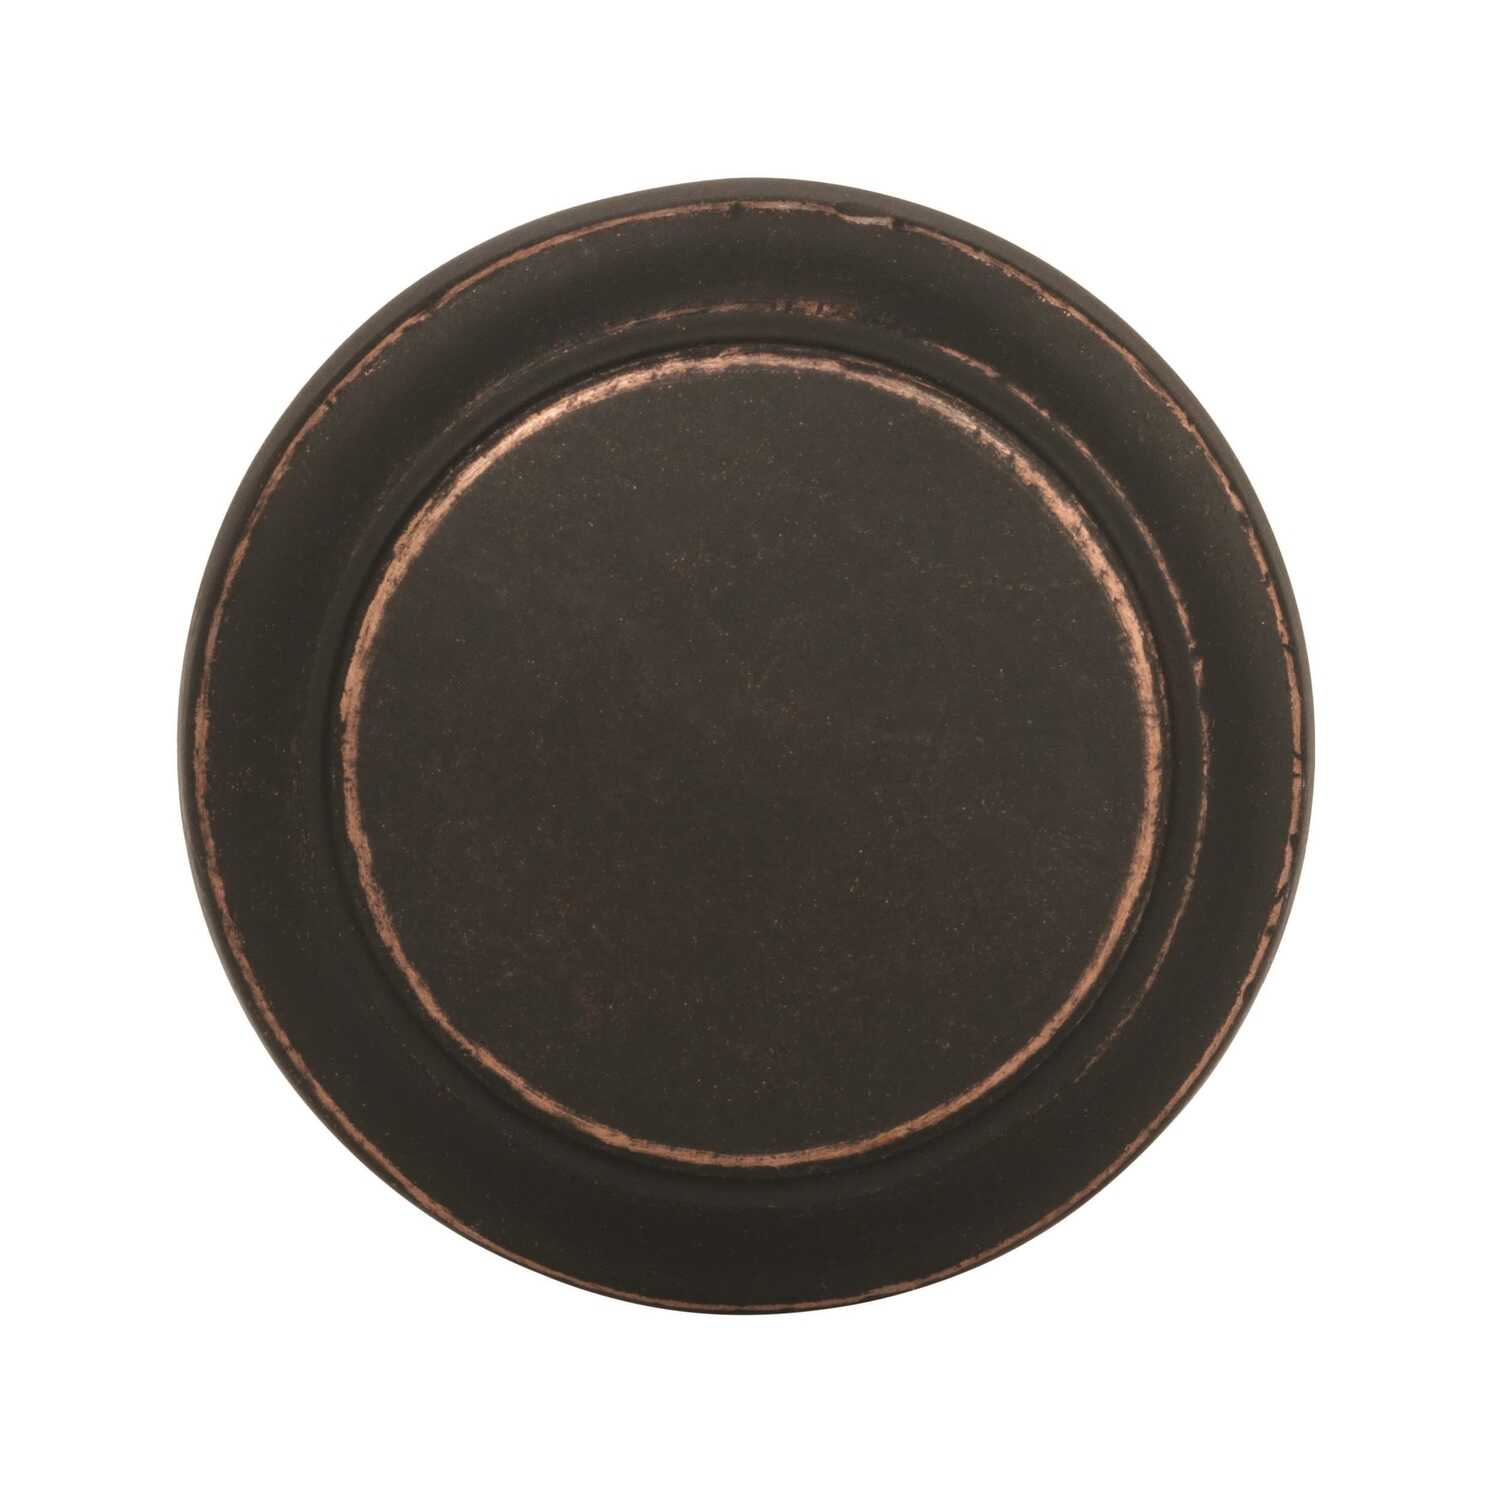 Amerock  Highland Ridge Collection  Round  Cabinet Knob  1-3/16 in. Dia. 1-1/4 in. Dark Oiled Bronze